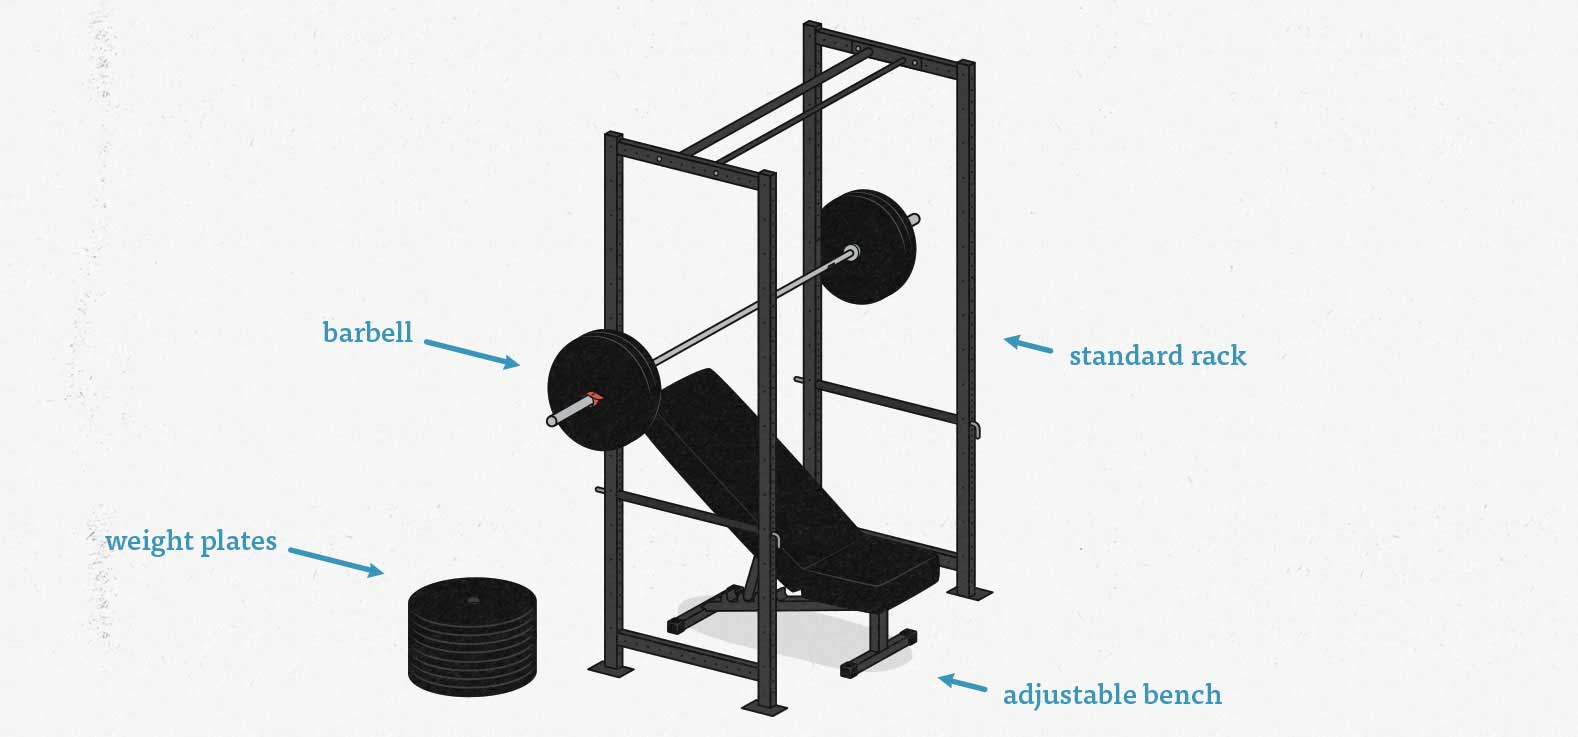 Building a barbell home gym for size, strength, and aesthetics: what equipment should you buy?